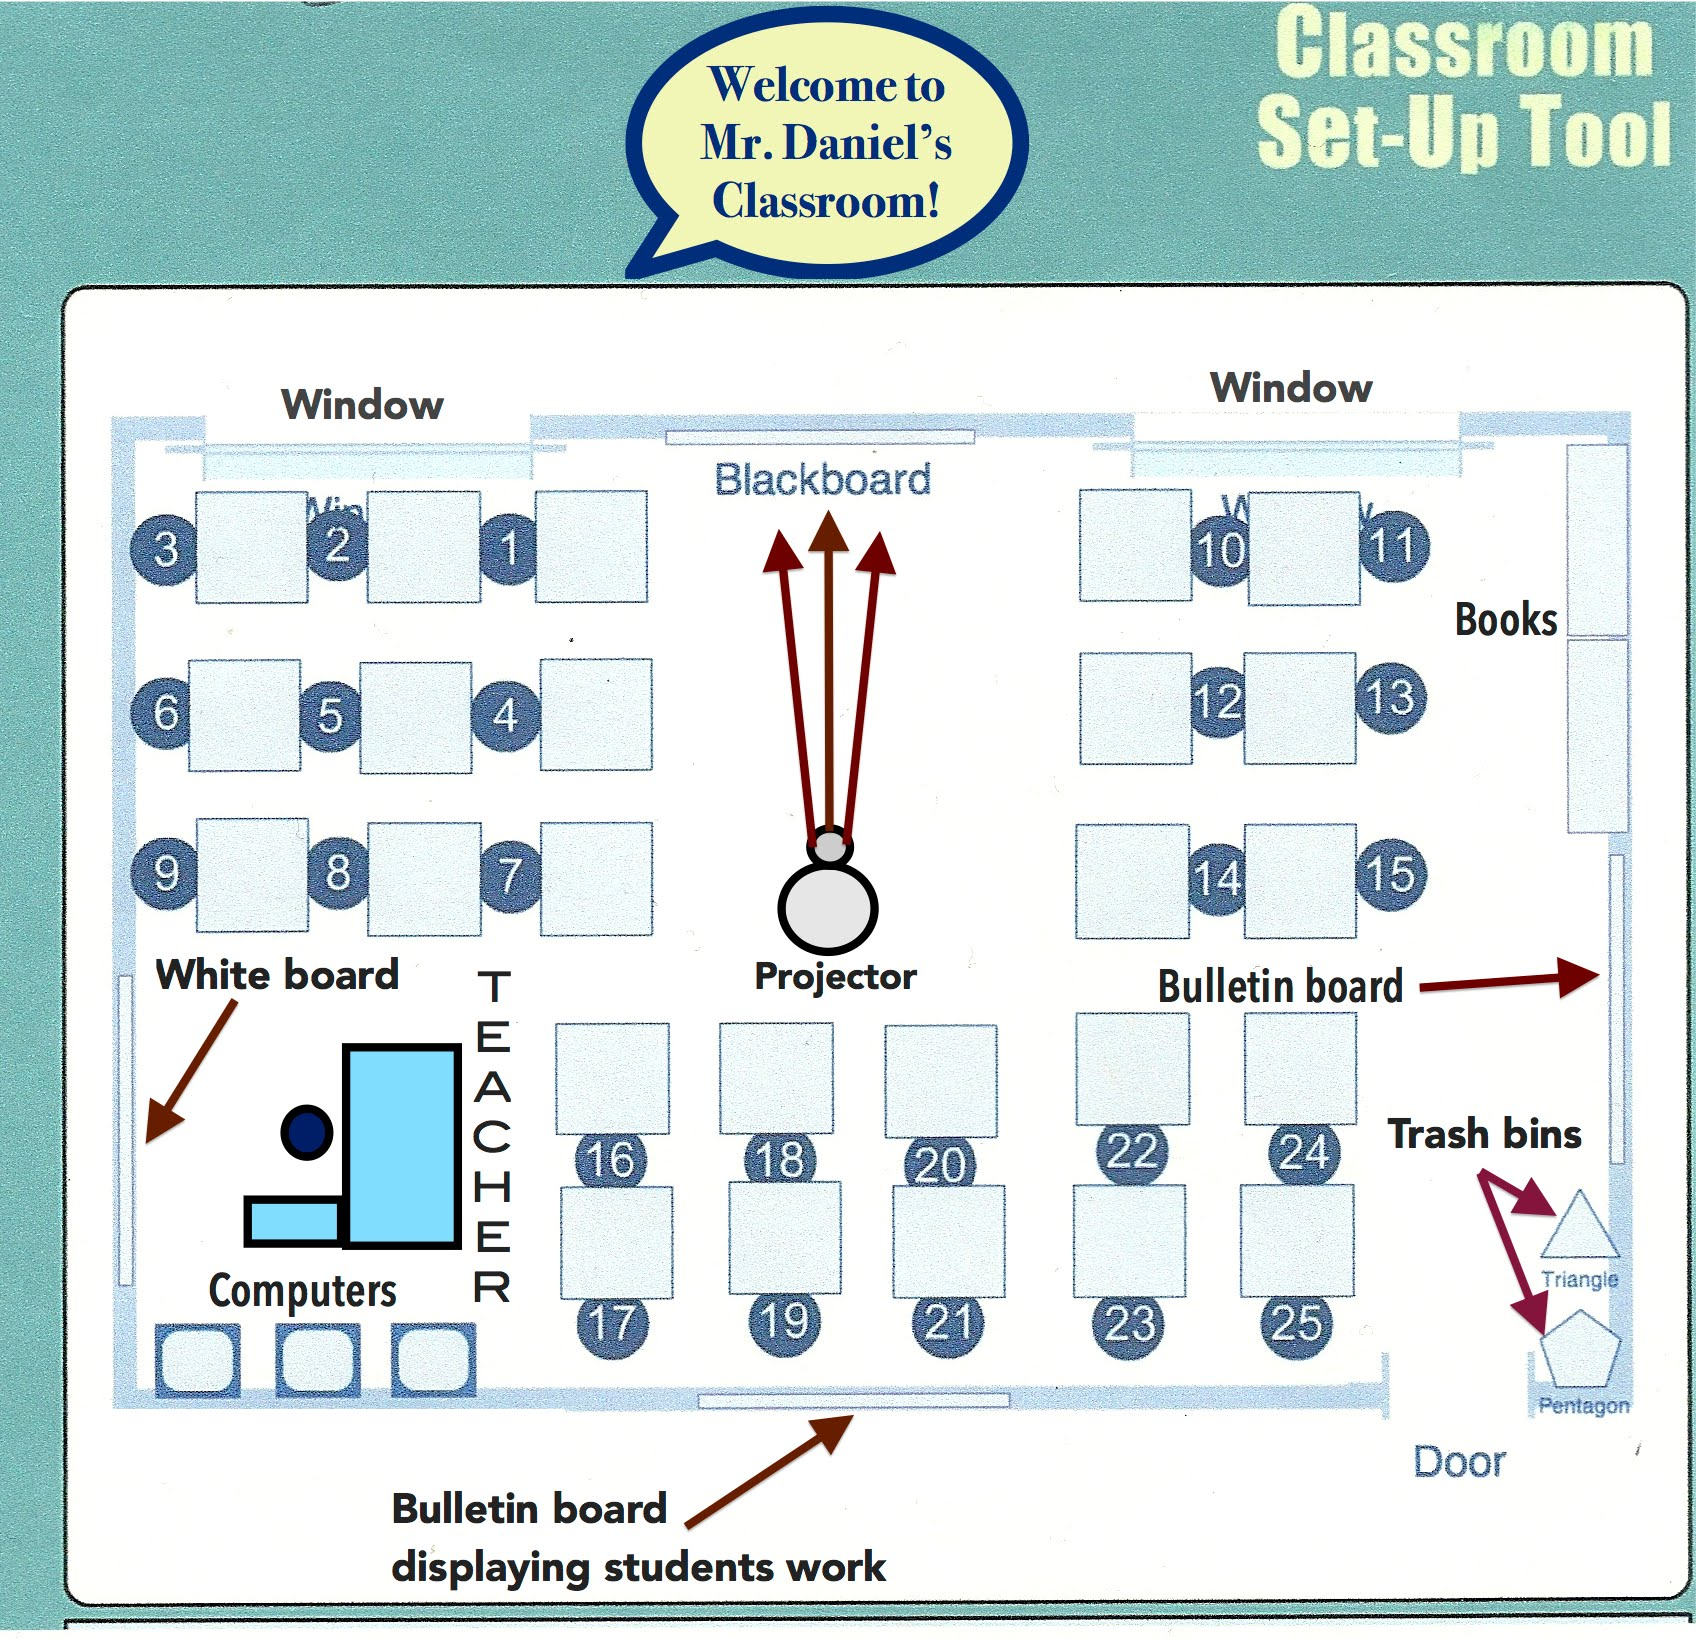 Classroom Design Rationale : Classroom layout and rationale john daniel s teaching